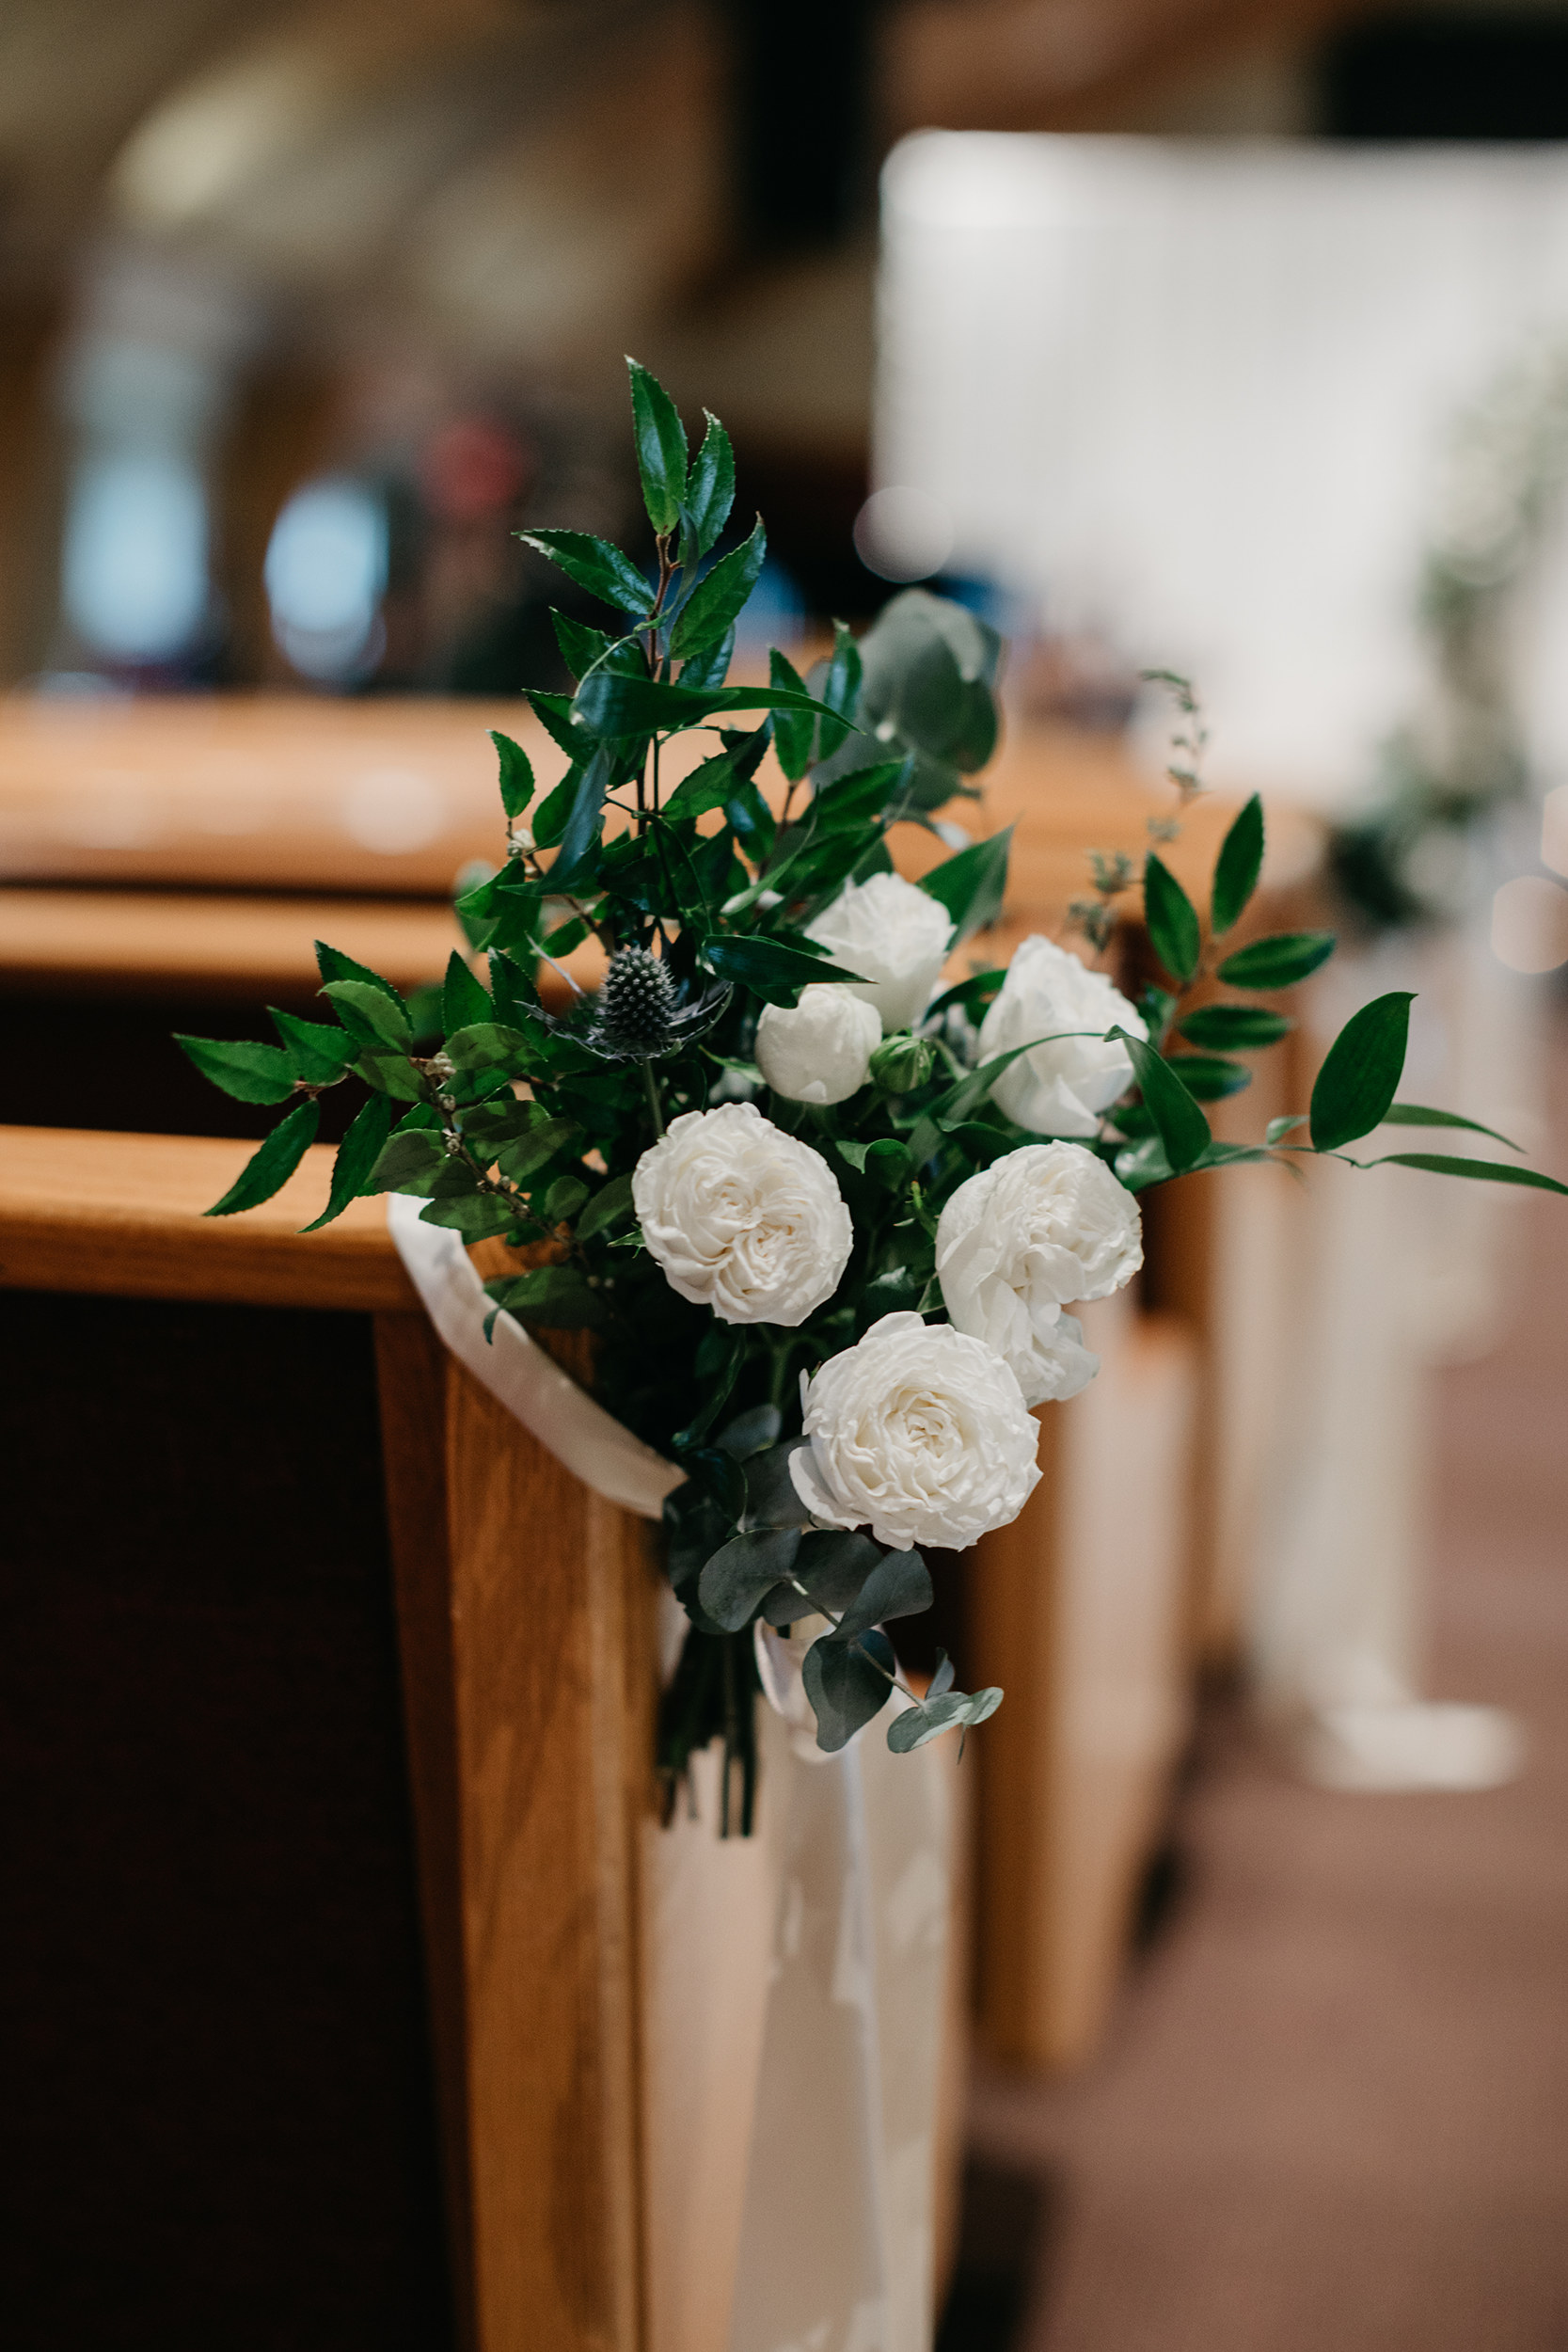 Violette-fleurs-event-design-roseville-Nelli-noel-photography-the-falls-event-center-Flowers-Upscale-Decor-Groom-Bride-pew-details.jpg